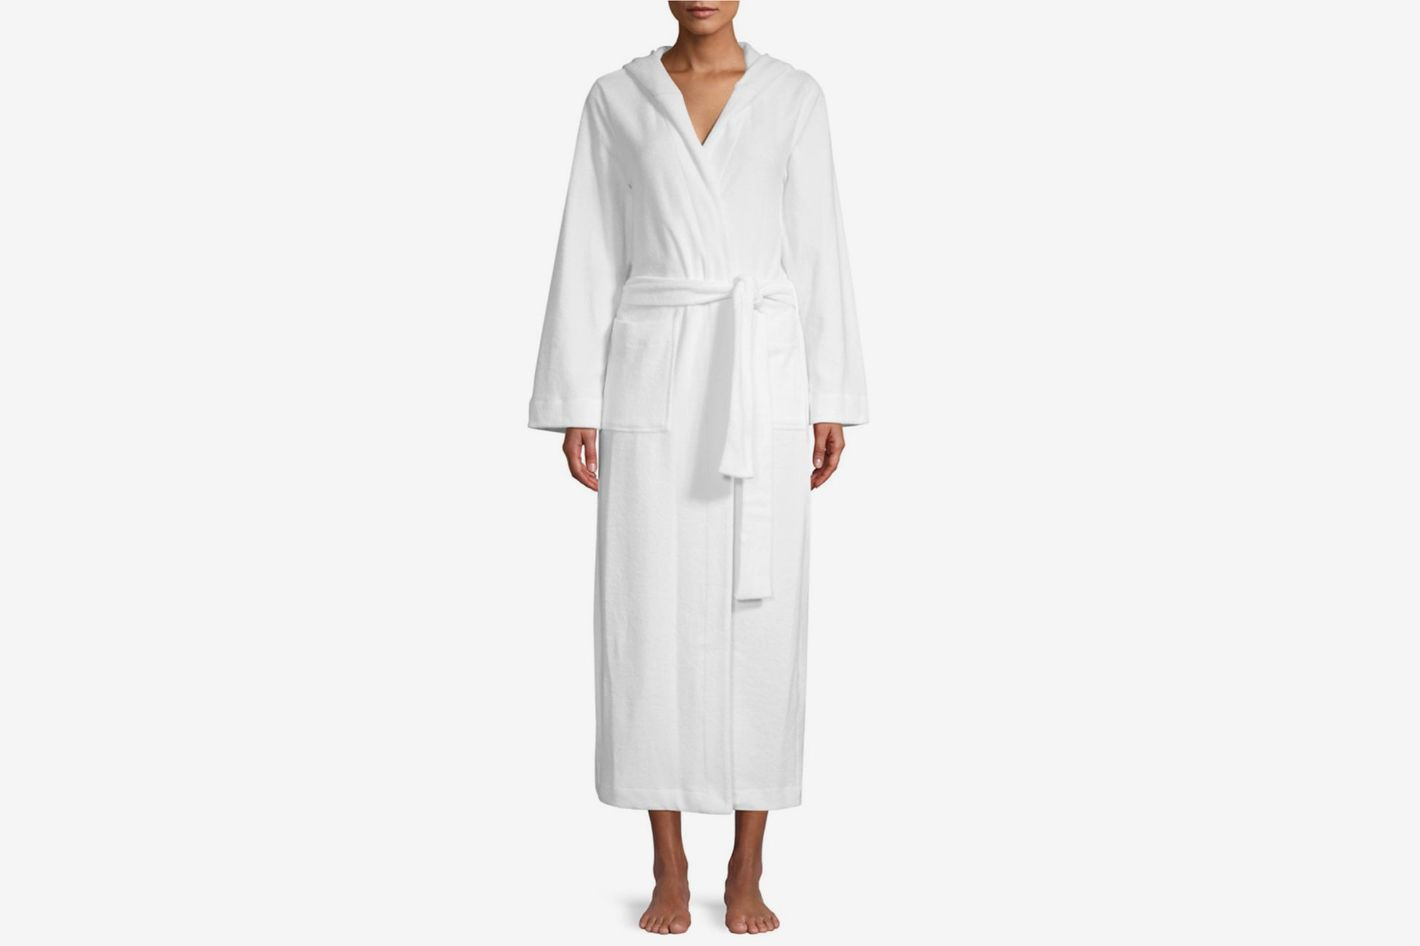 12 Best Bathrobes for Women 2018 61079e8b0